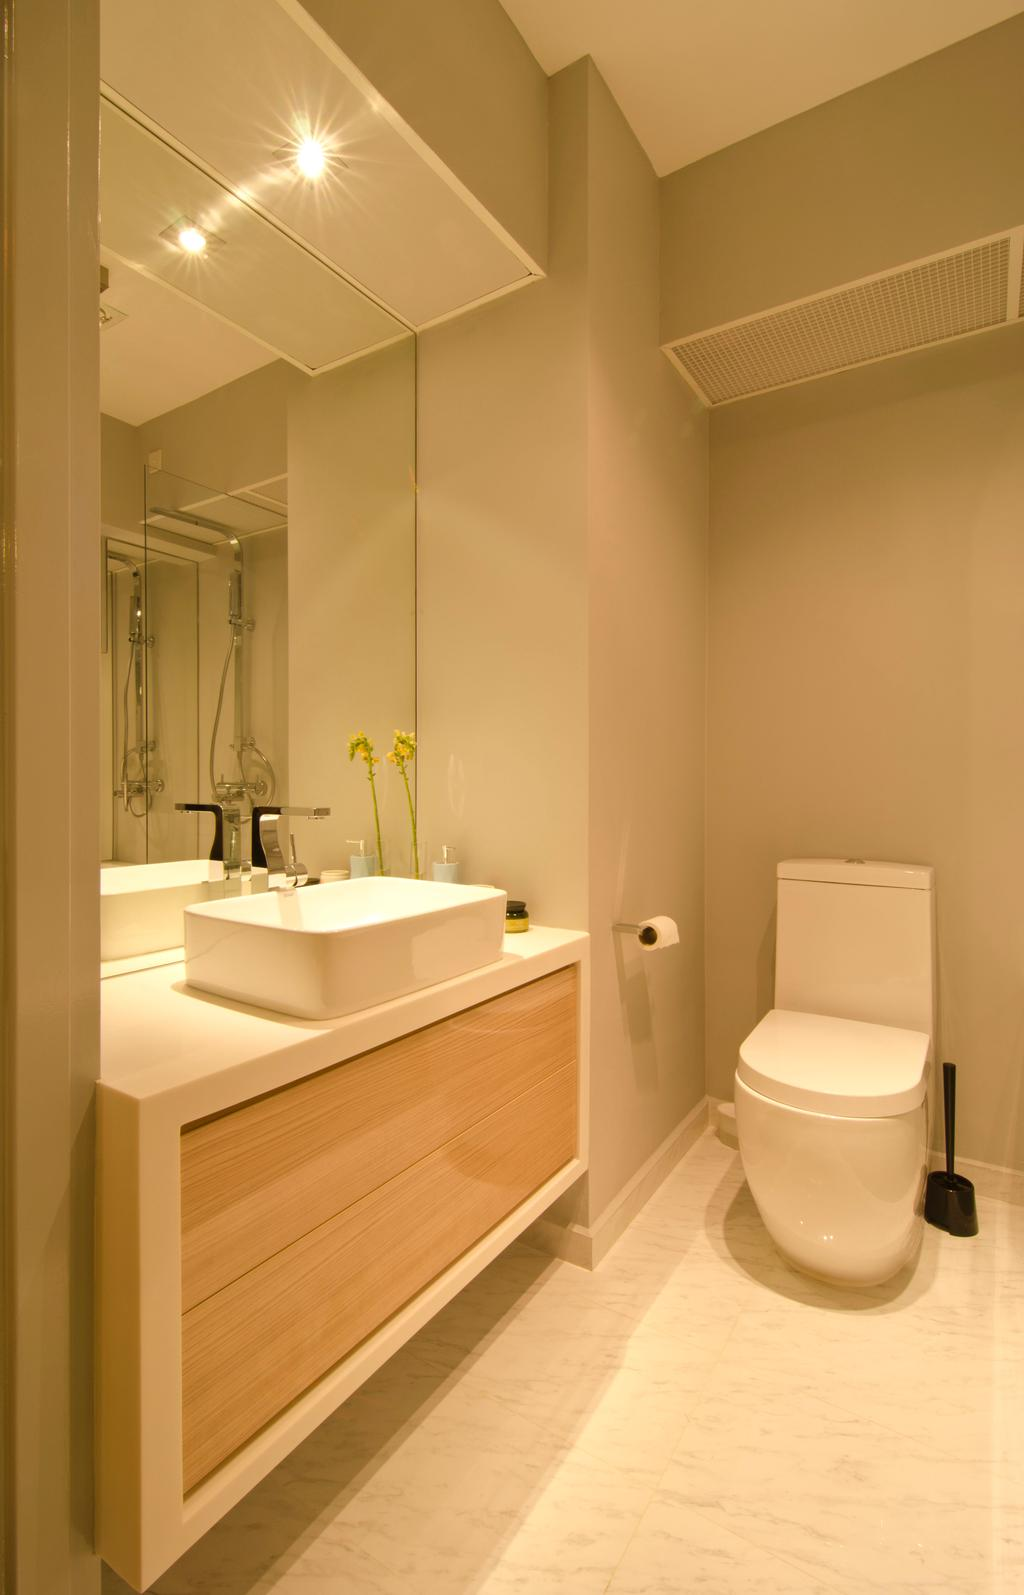 Contemporary, HDB, Bathroom, 27 Ghim Moh Link, Interior Designer, Fifth Avenue Interior, White Basin, Brown Drawers, Mirrors, Marble Flooring, Toilet Bowl, Mirror Lighting, Toilet, Indoors, Interior Design, Room